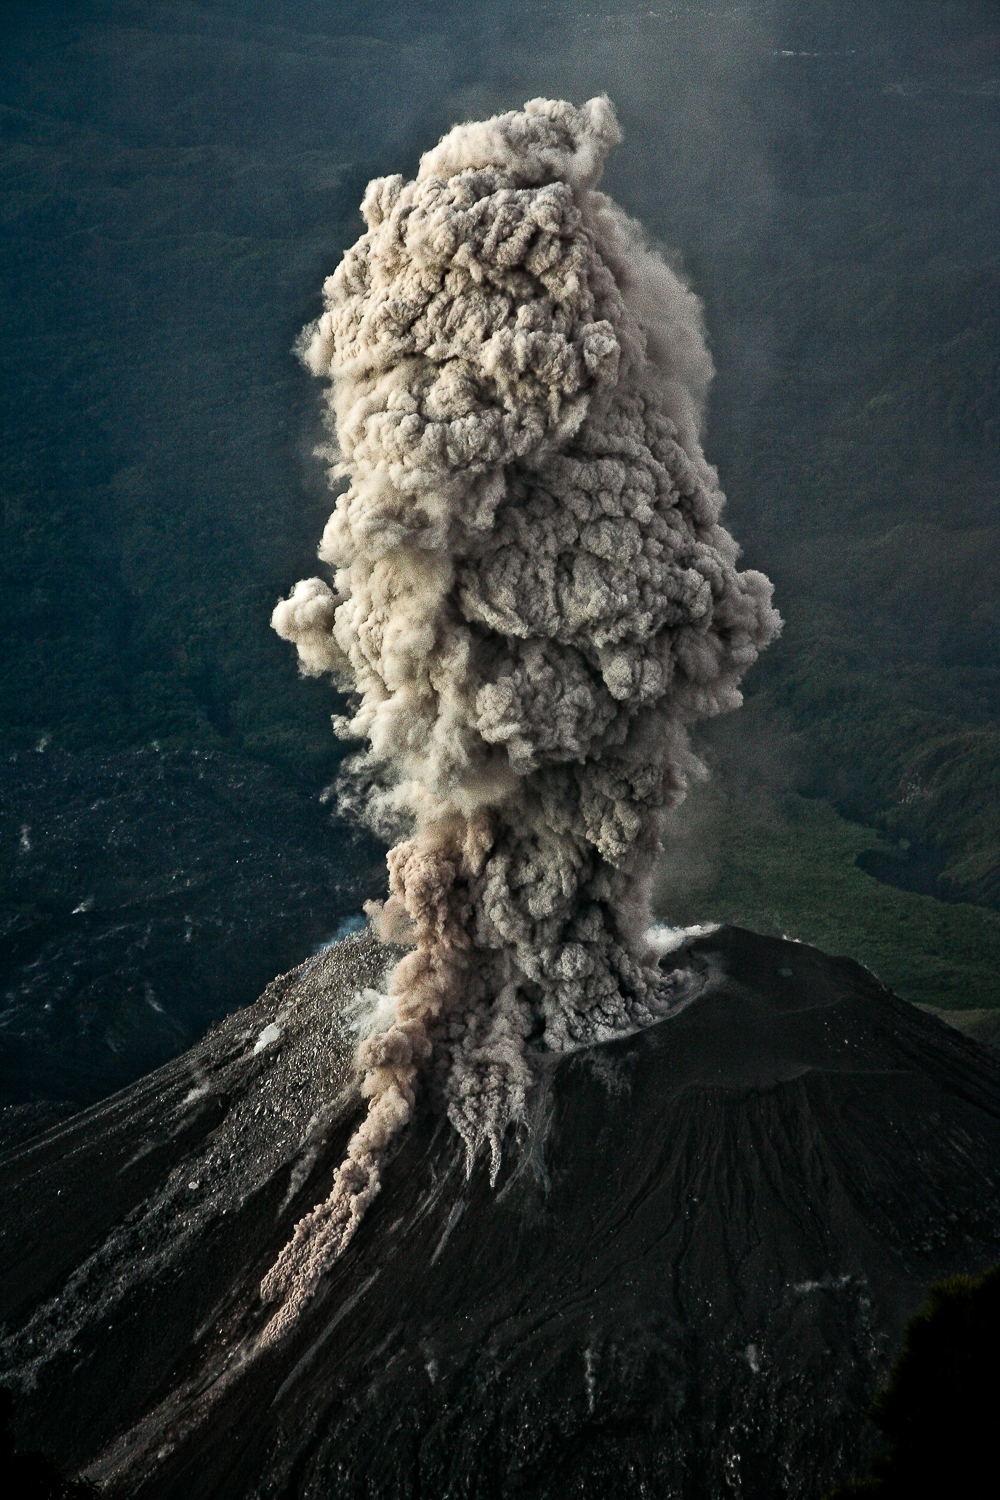 Eruption_morecontrast-999.jpg